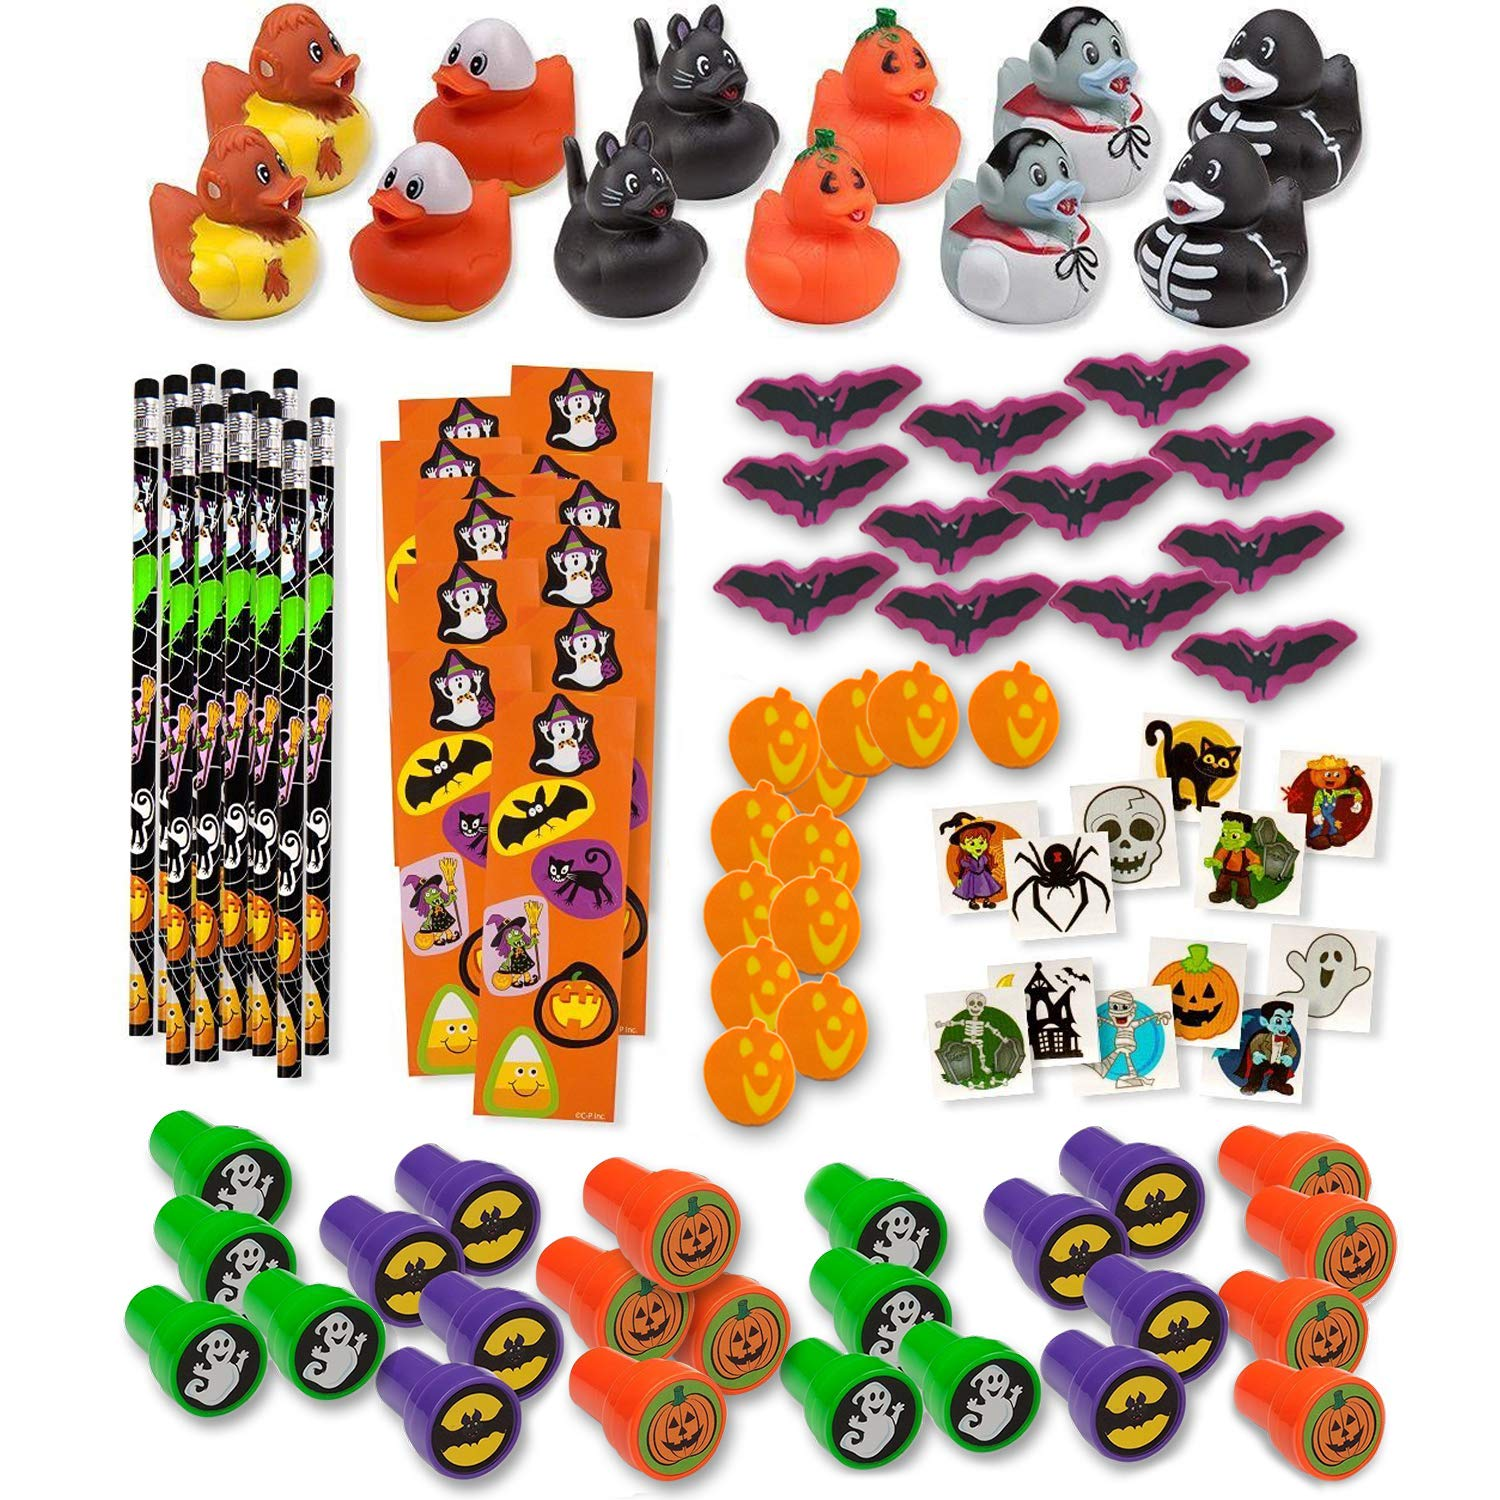 Bulk 336 Halloween Novelty Toys for Kids 24 Rubber Ducks 24 Stampers 24 Pencils 24 Sticker Sheets 96 Mini Erasers 144 Glitter Tattoos Halloween Treats Non Candy Party Favors Goody Fillers Giveaways by Gift Boutique